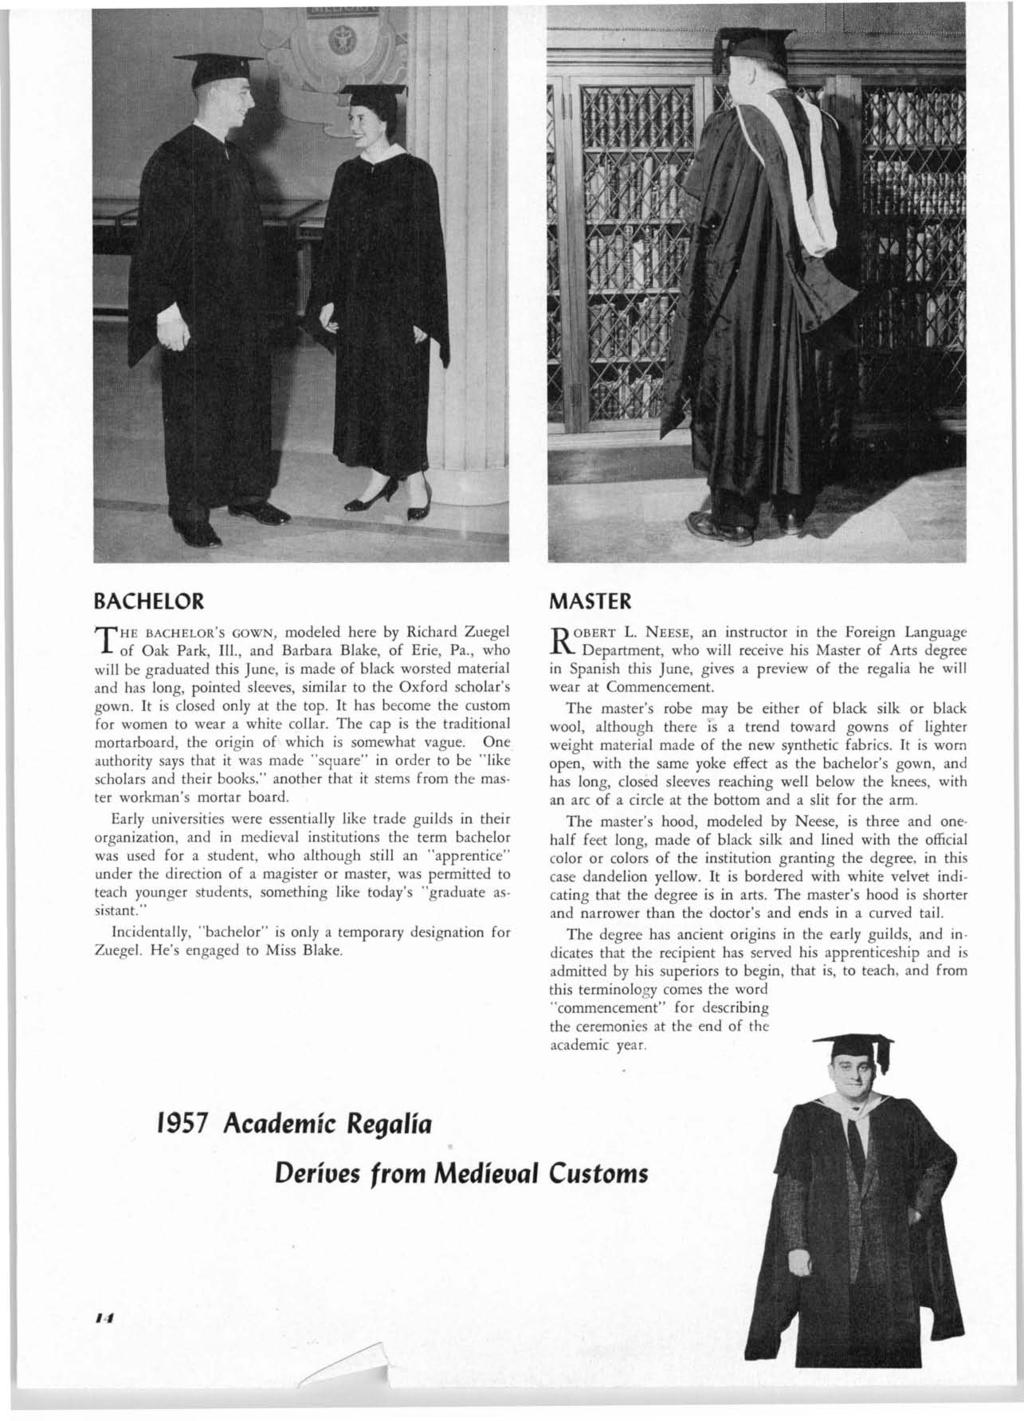 BACHELOR T HE BACHELOR'S GOWN I modeled here by Richard Zuegel of Oak Park, Ill., and Barbara Blake, of Erie, Pa.